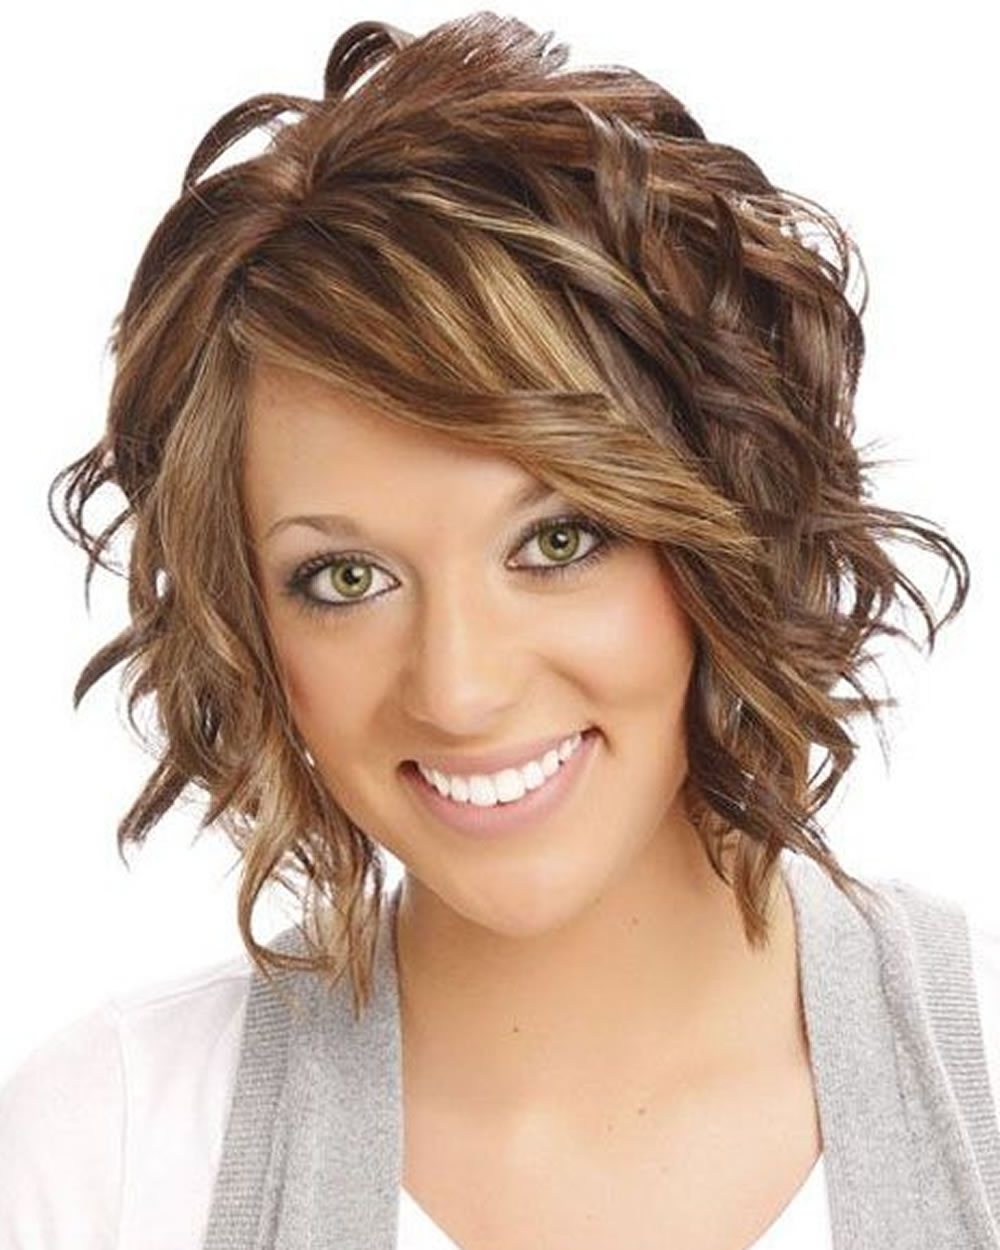 2018 Permed Hairstyles For Short Hair – Best 32 Curly Short Haircut Throughout Preferred Shaggy Perm Hairstyles (View 1 of 15)